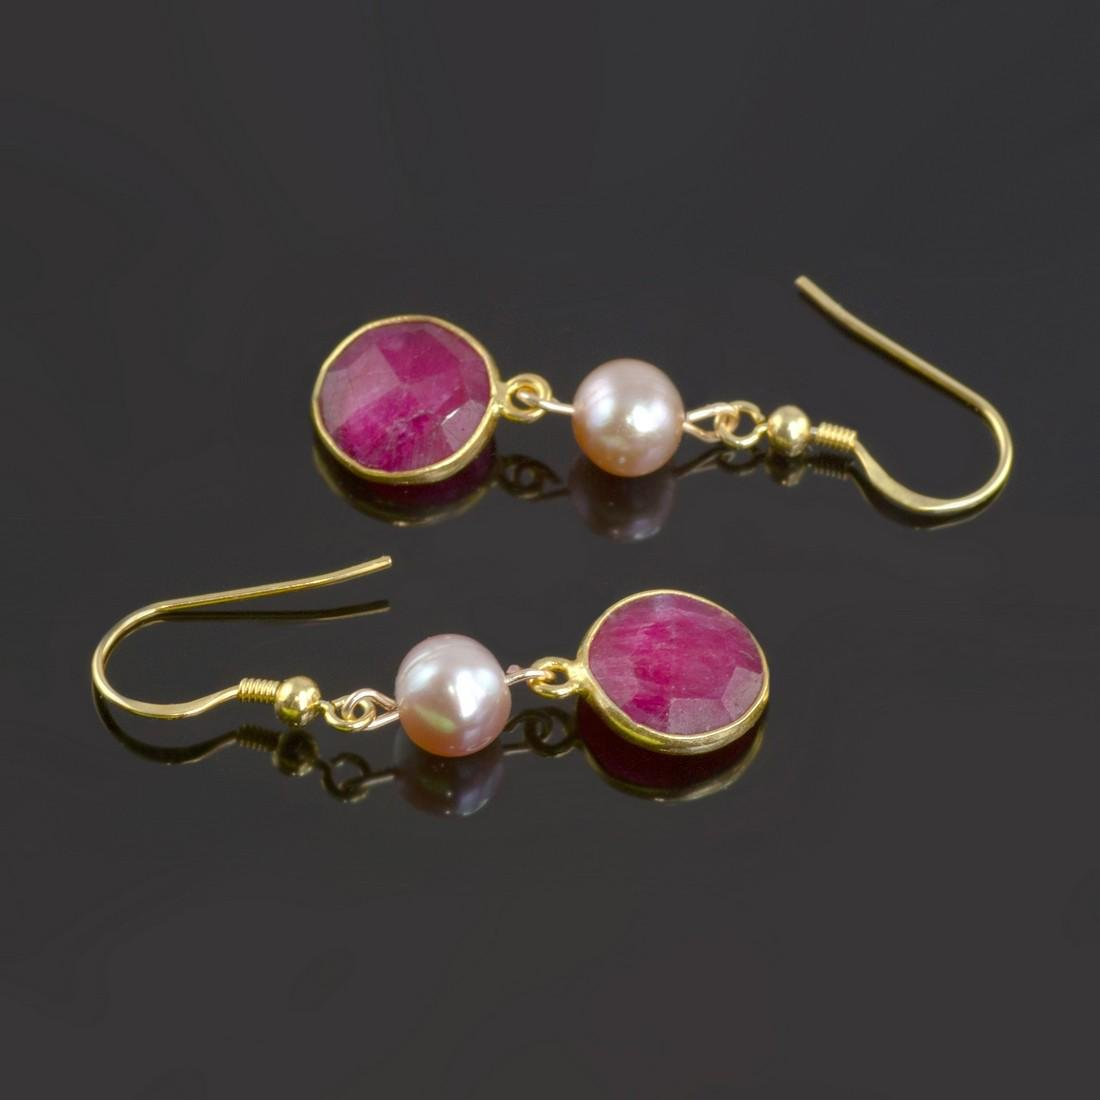 Ruby 5 carat Earrings with Pearls - 2